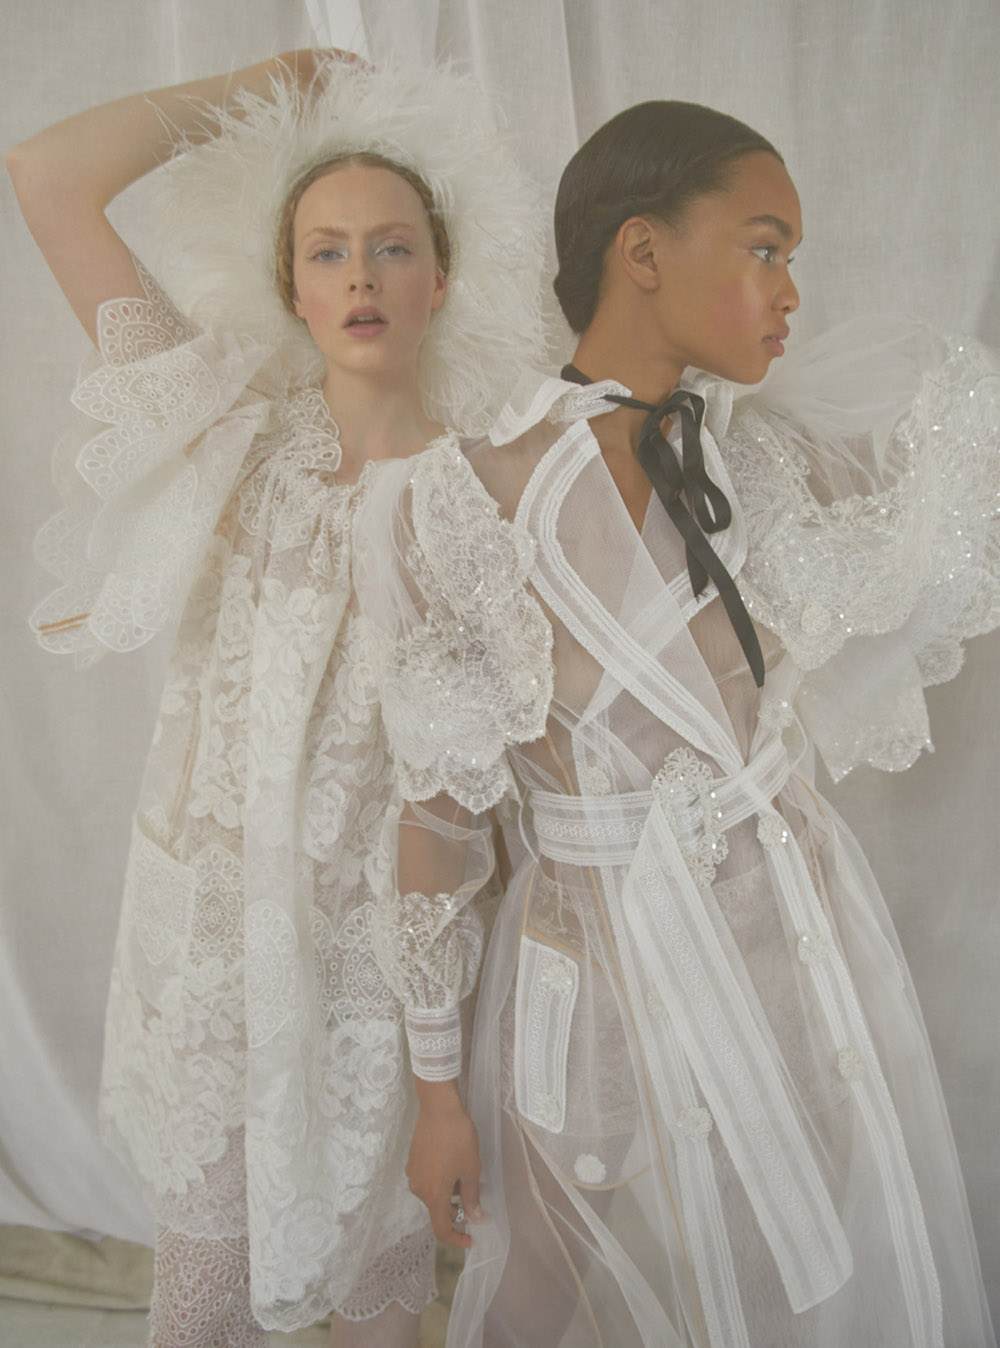 ''Sisterly Seraphim'' by Erik Madigan Heck for Harper's Bazaar UK June 2020